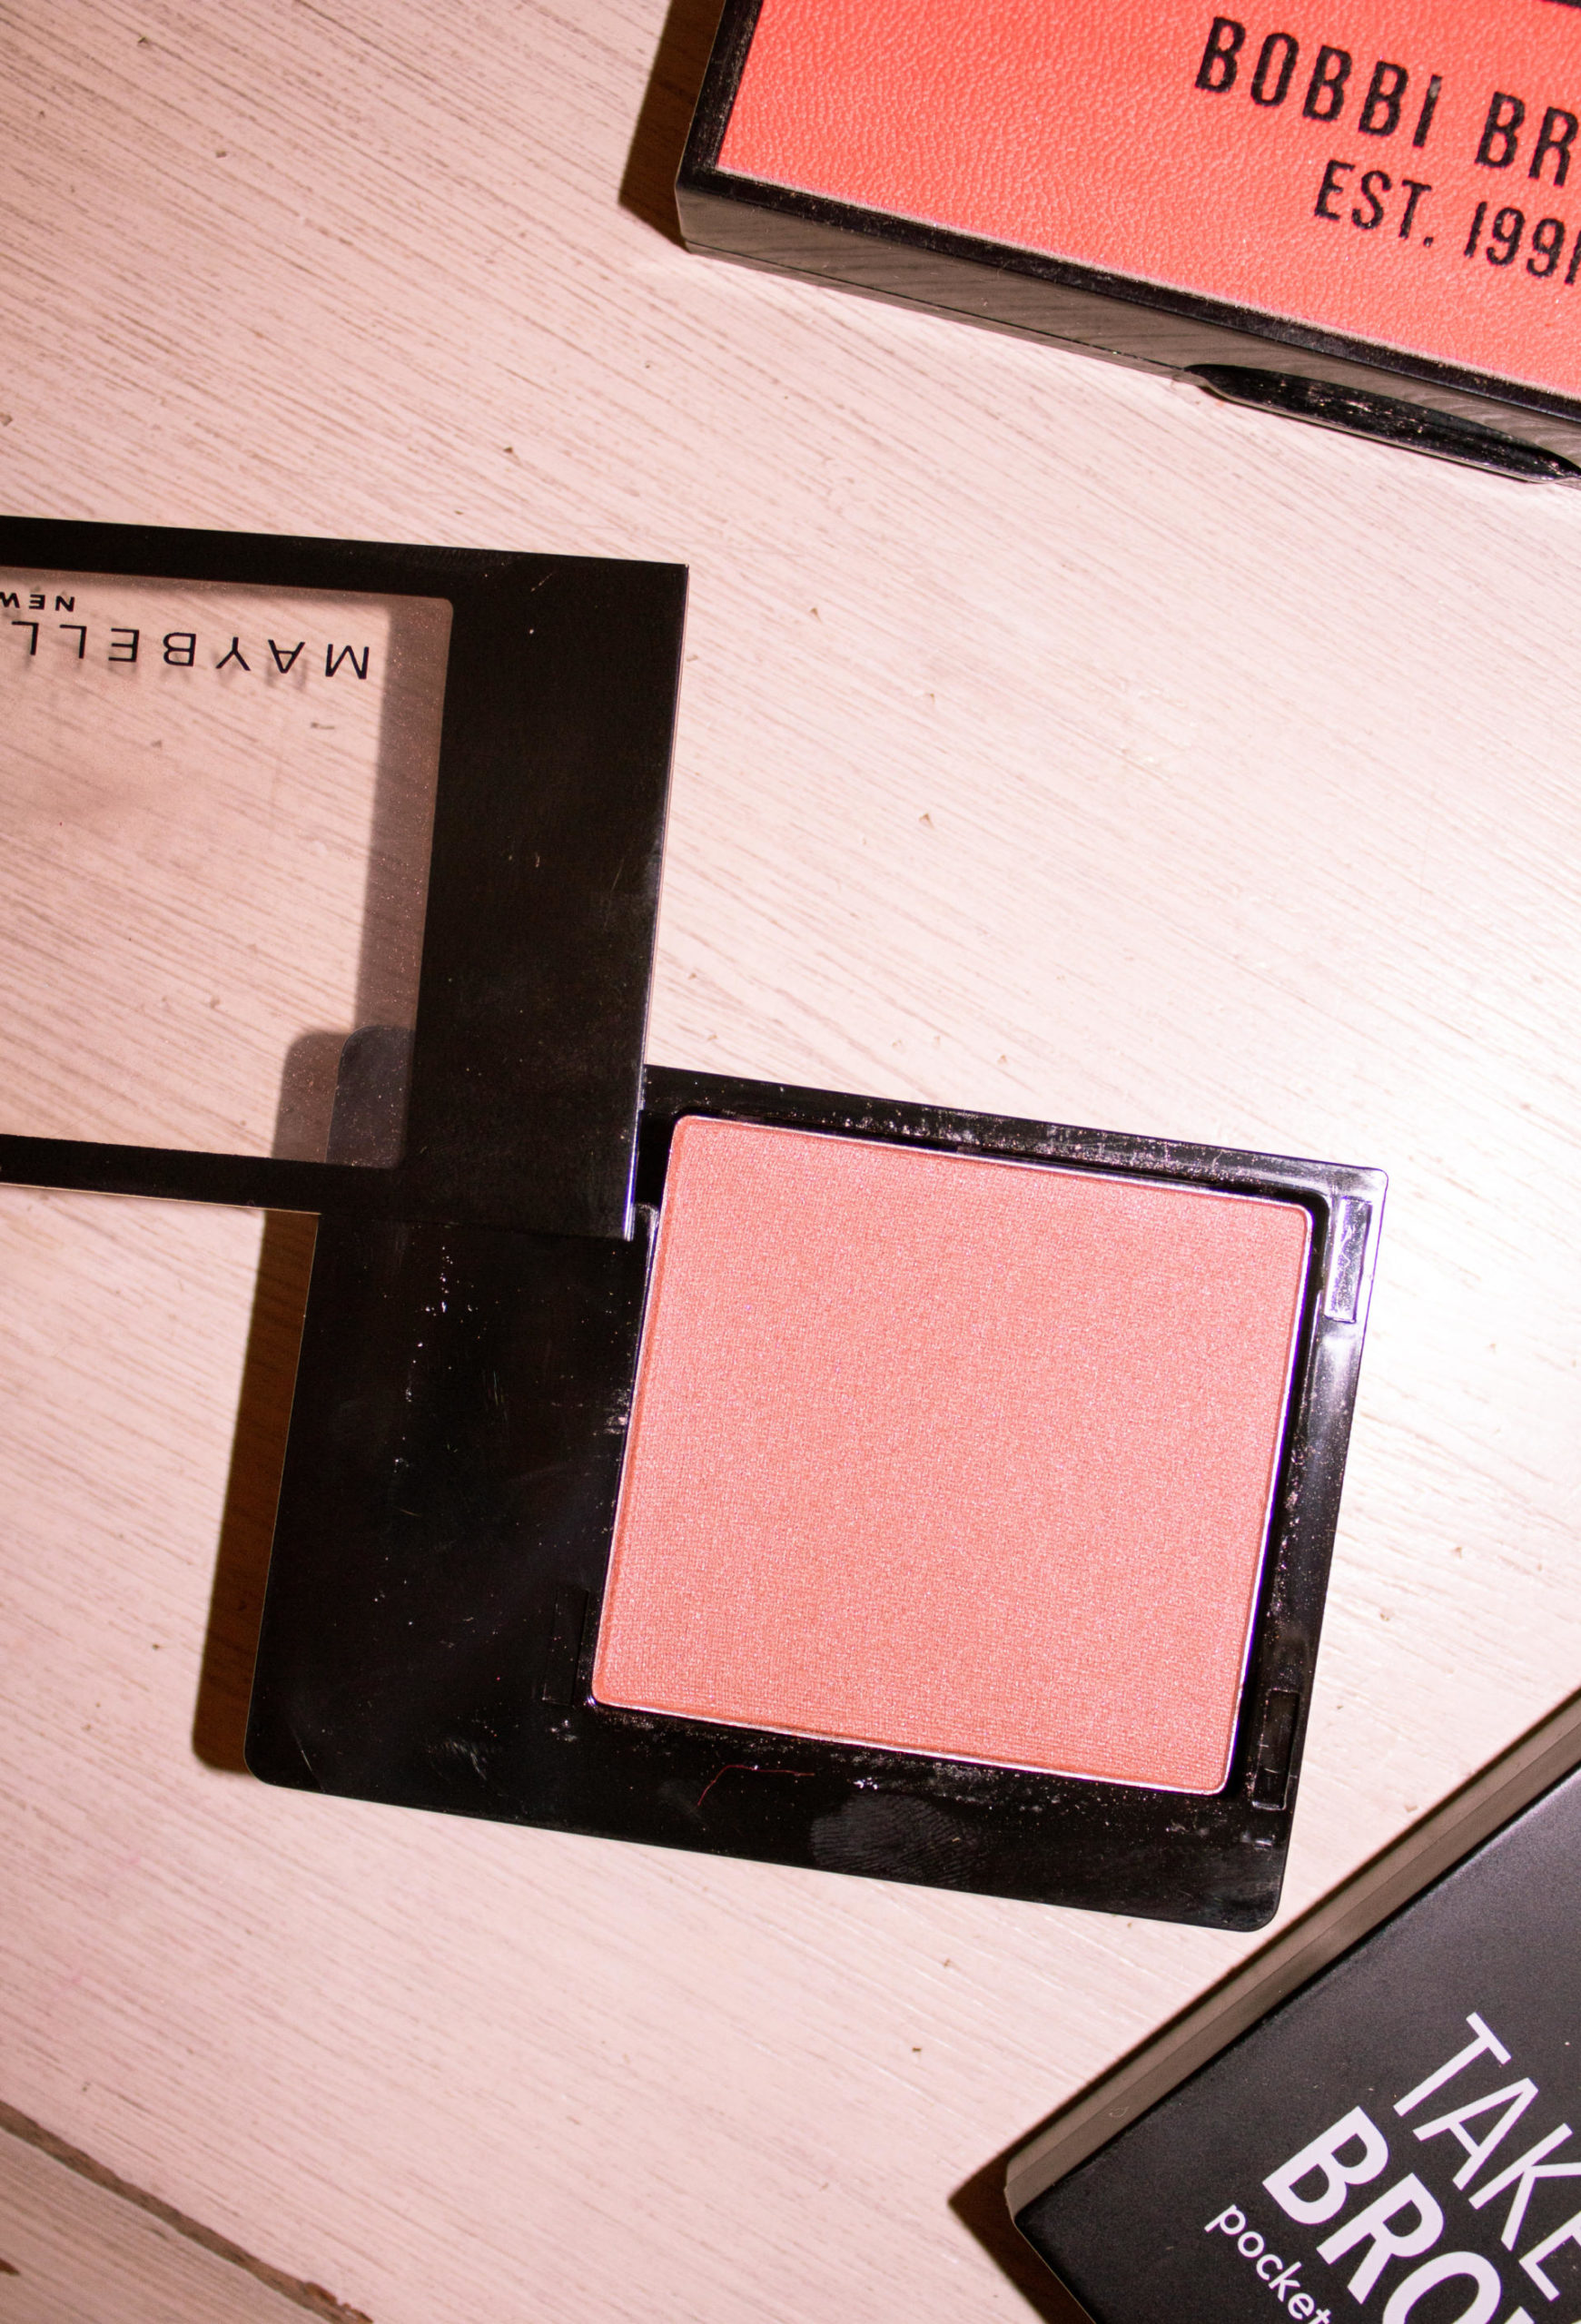 pink blush make-up on table